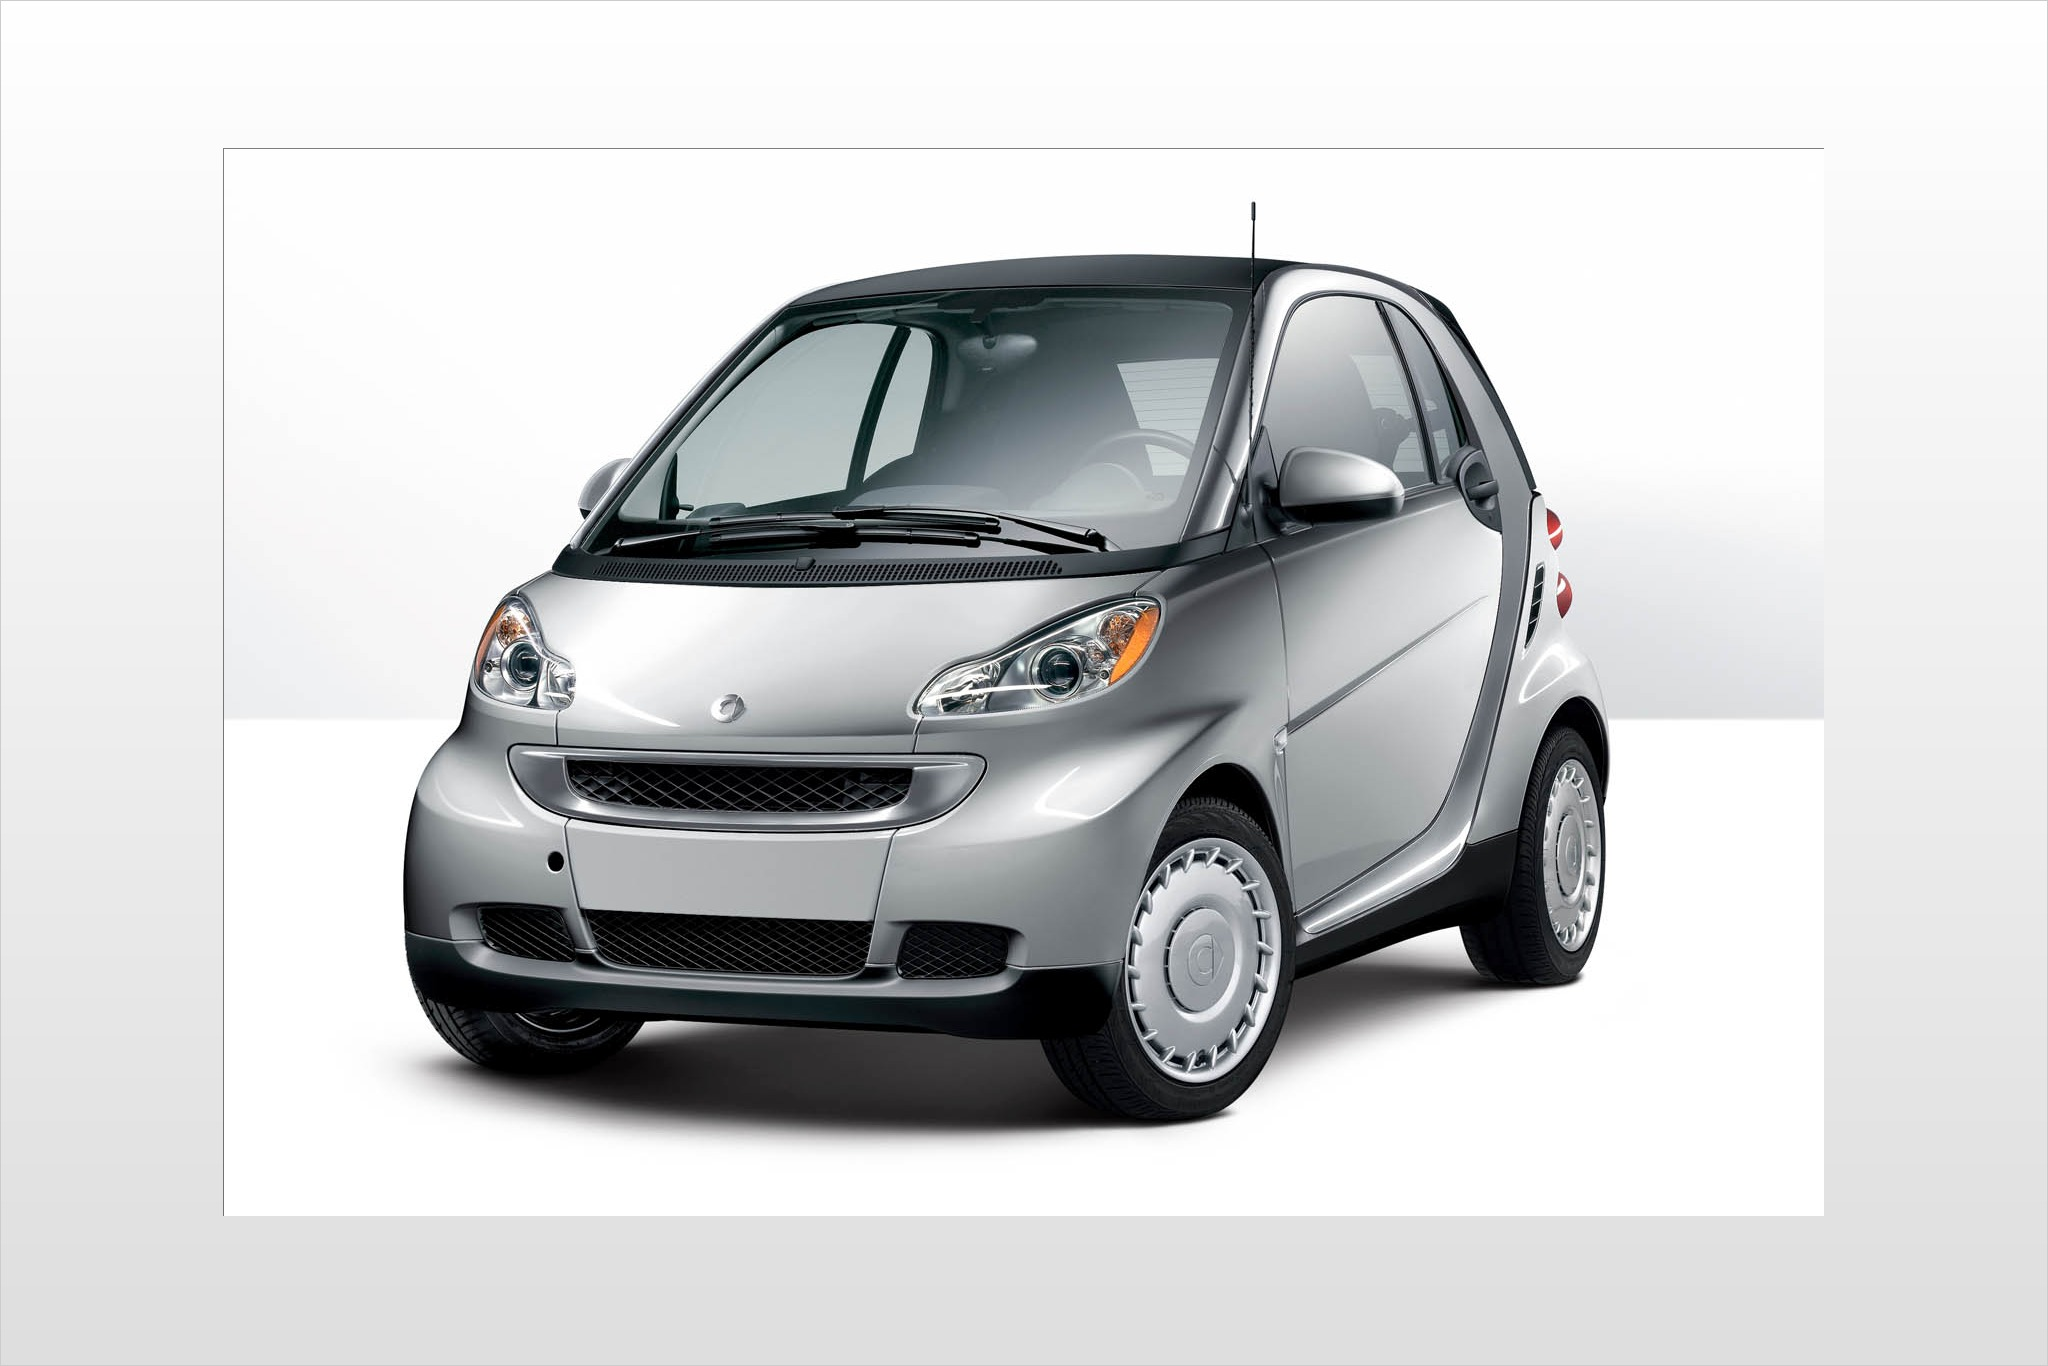 2012 smart fortwo 2dr Hat exterior #8